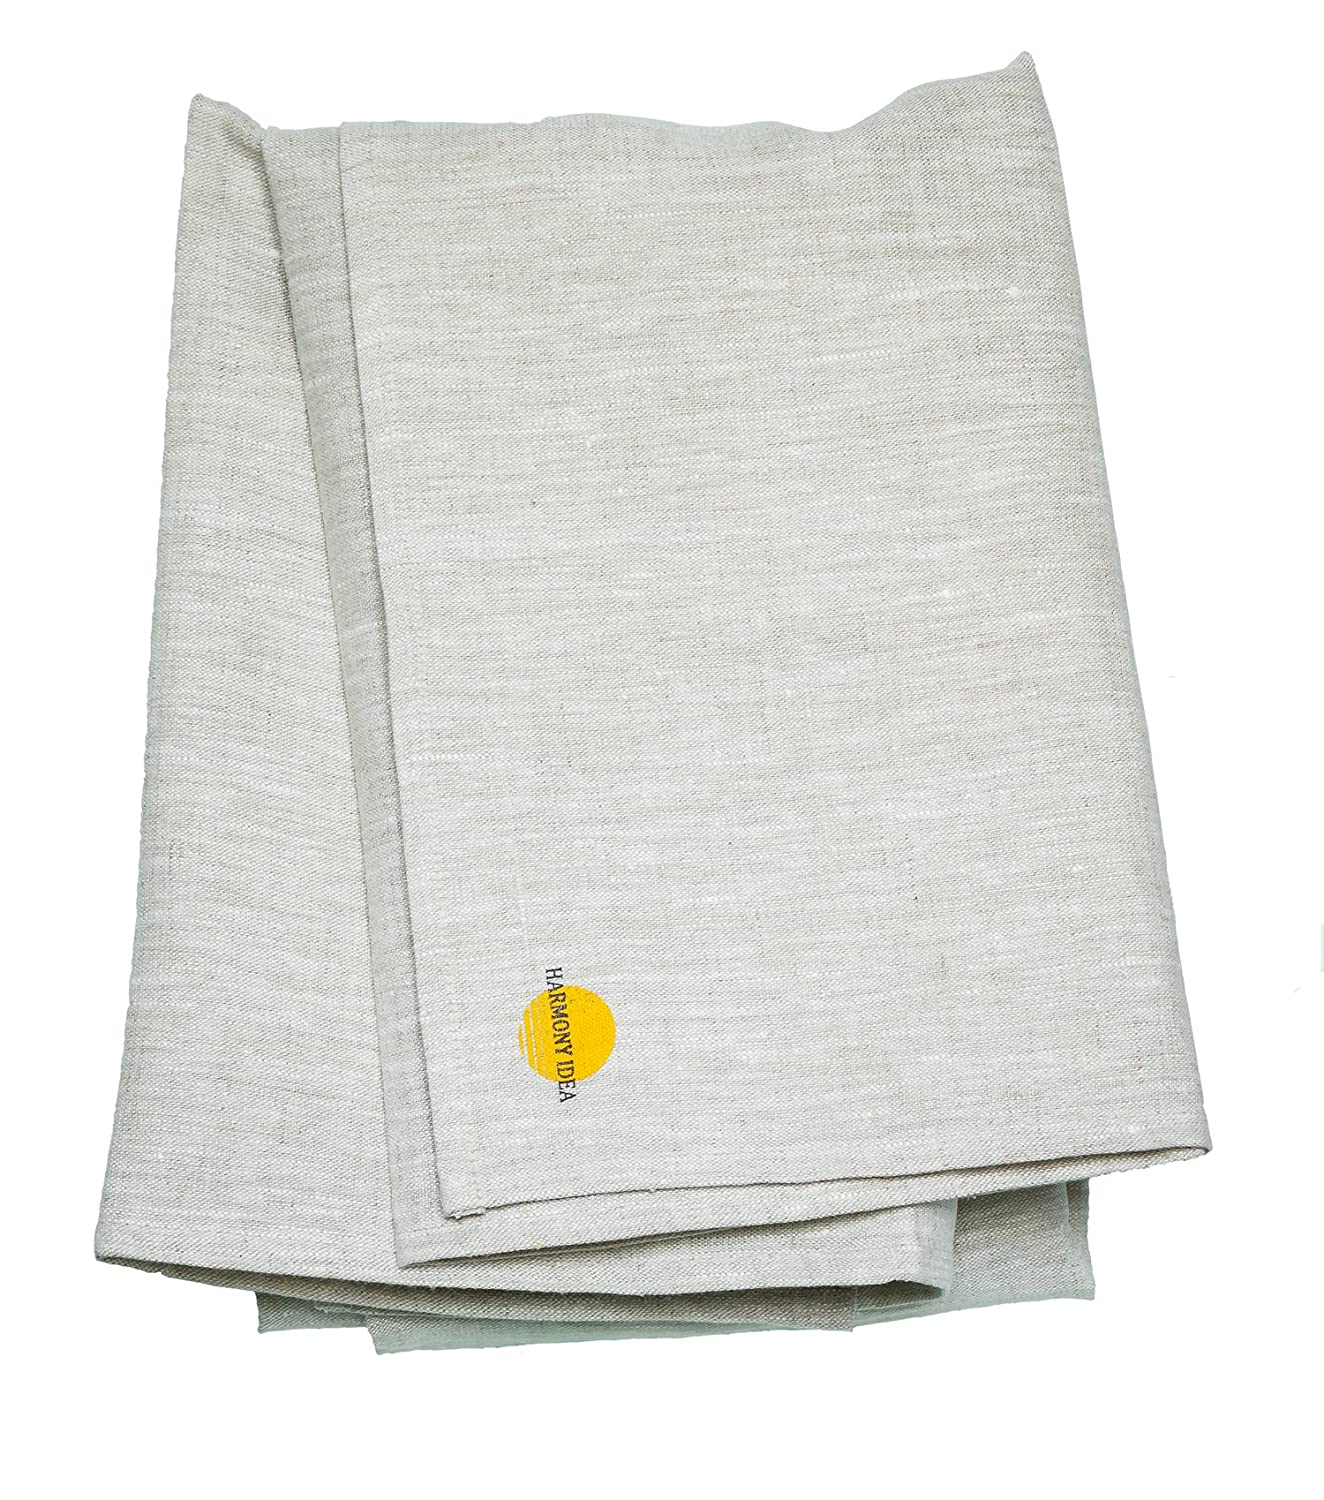 Harmony Idea – Organic Soft Quick Dry Towel